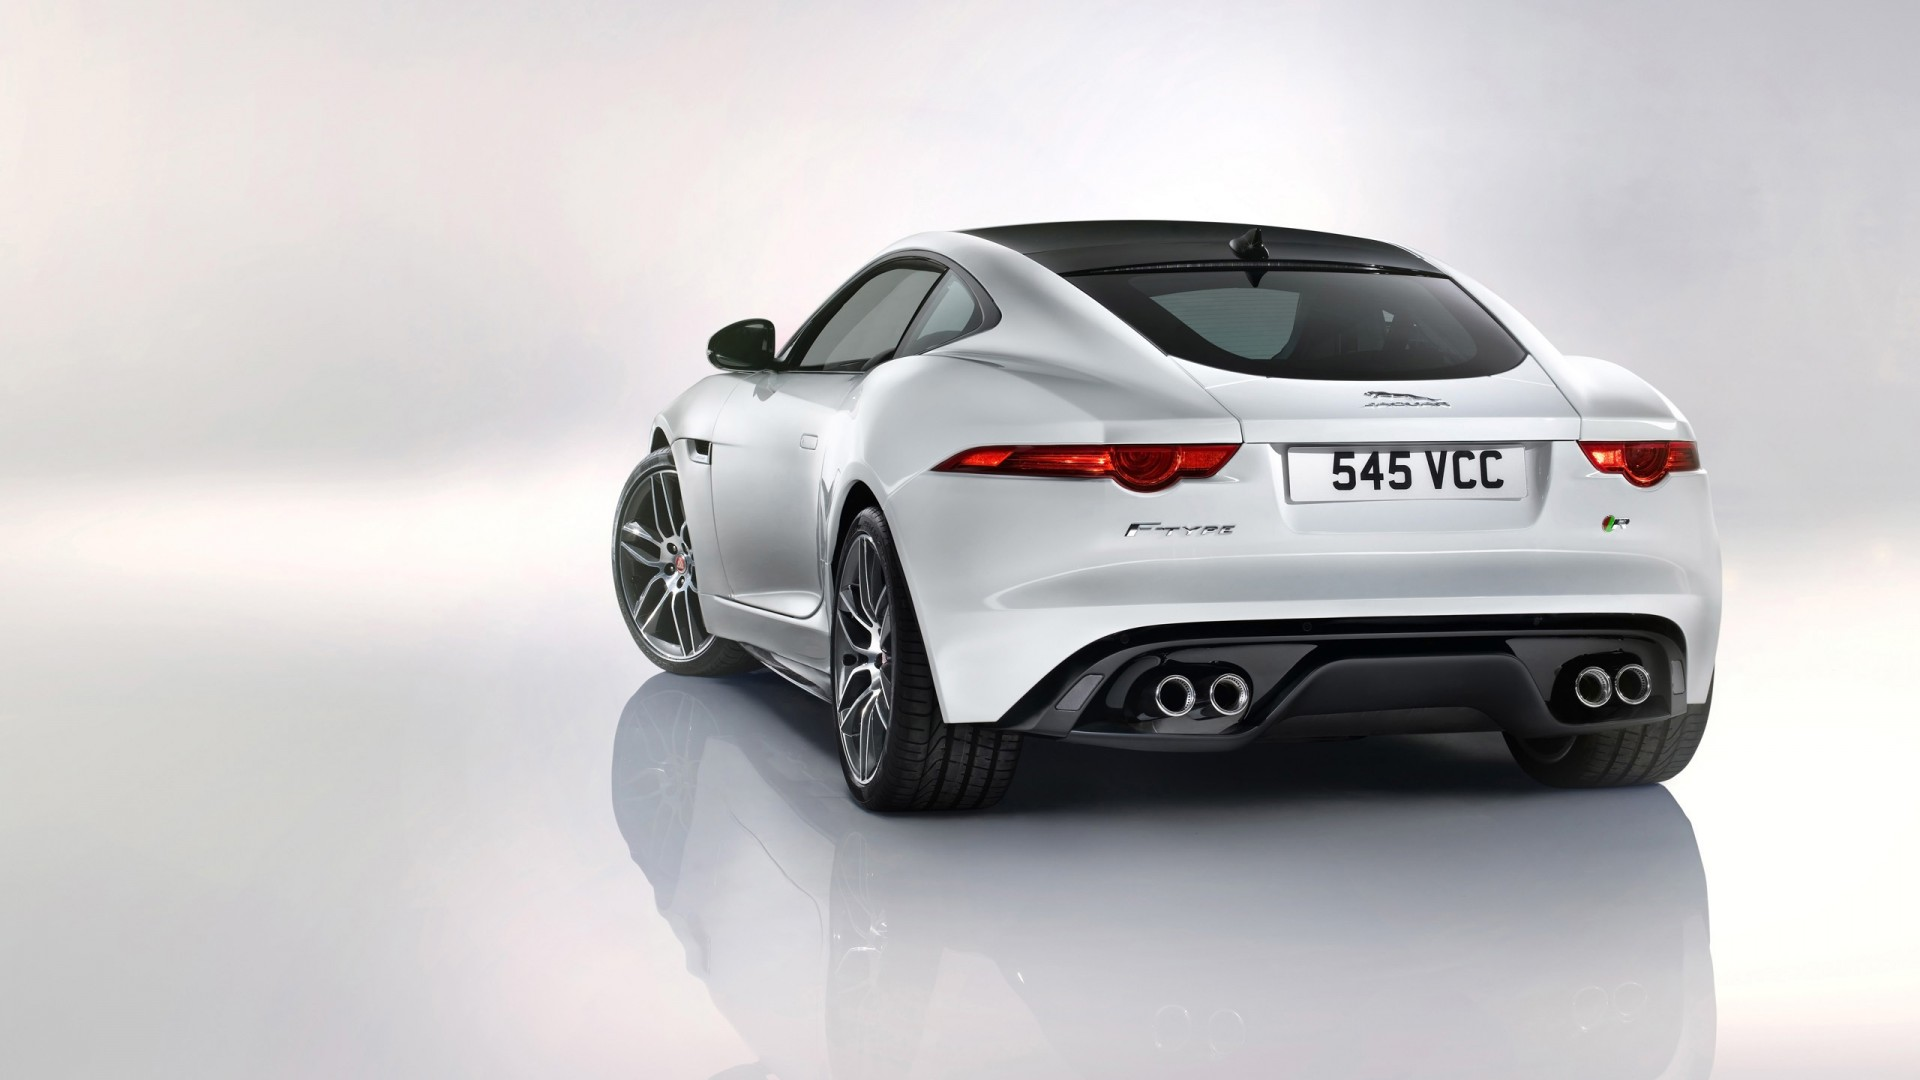 2014 jaguar f type r coupe white 2 wallpaper hd car wallpapers